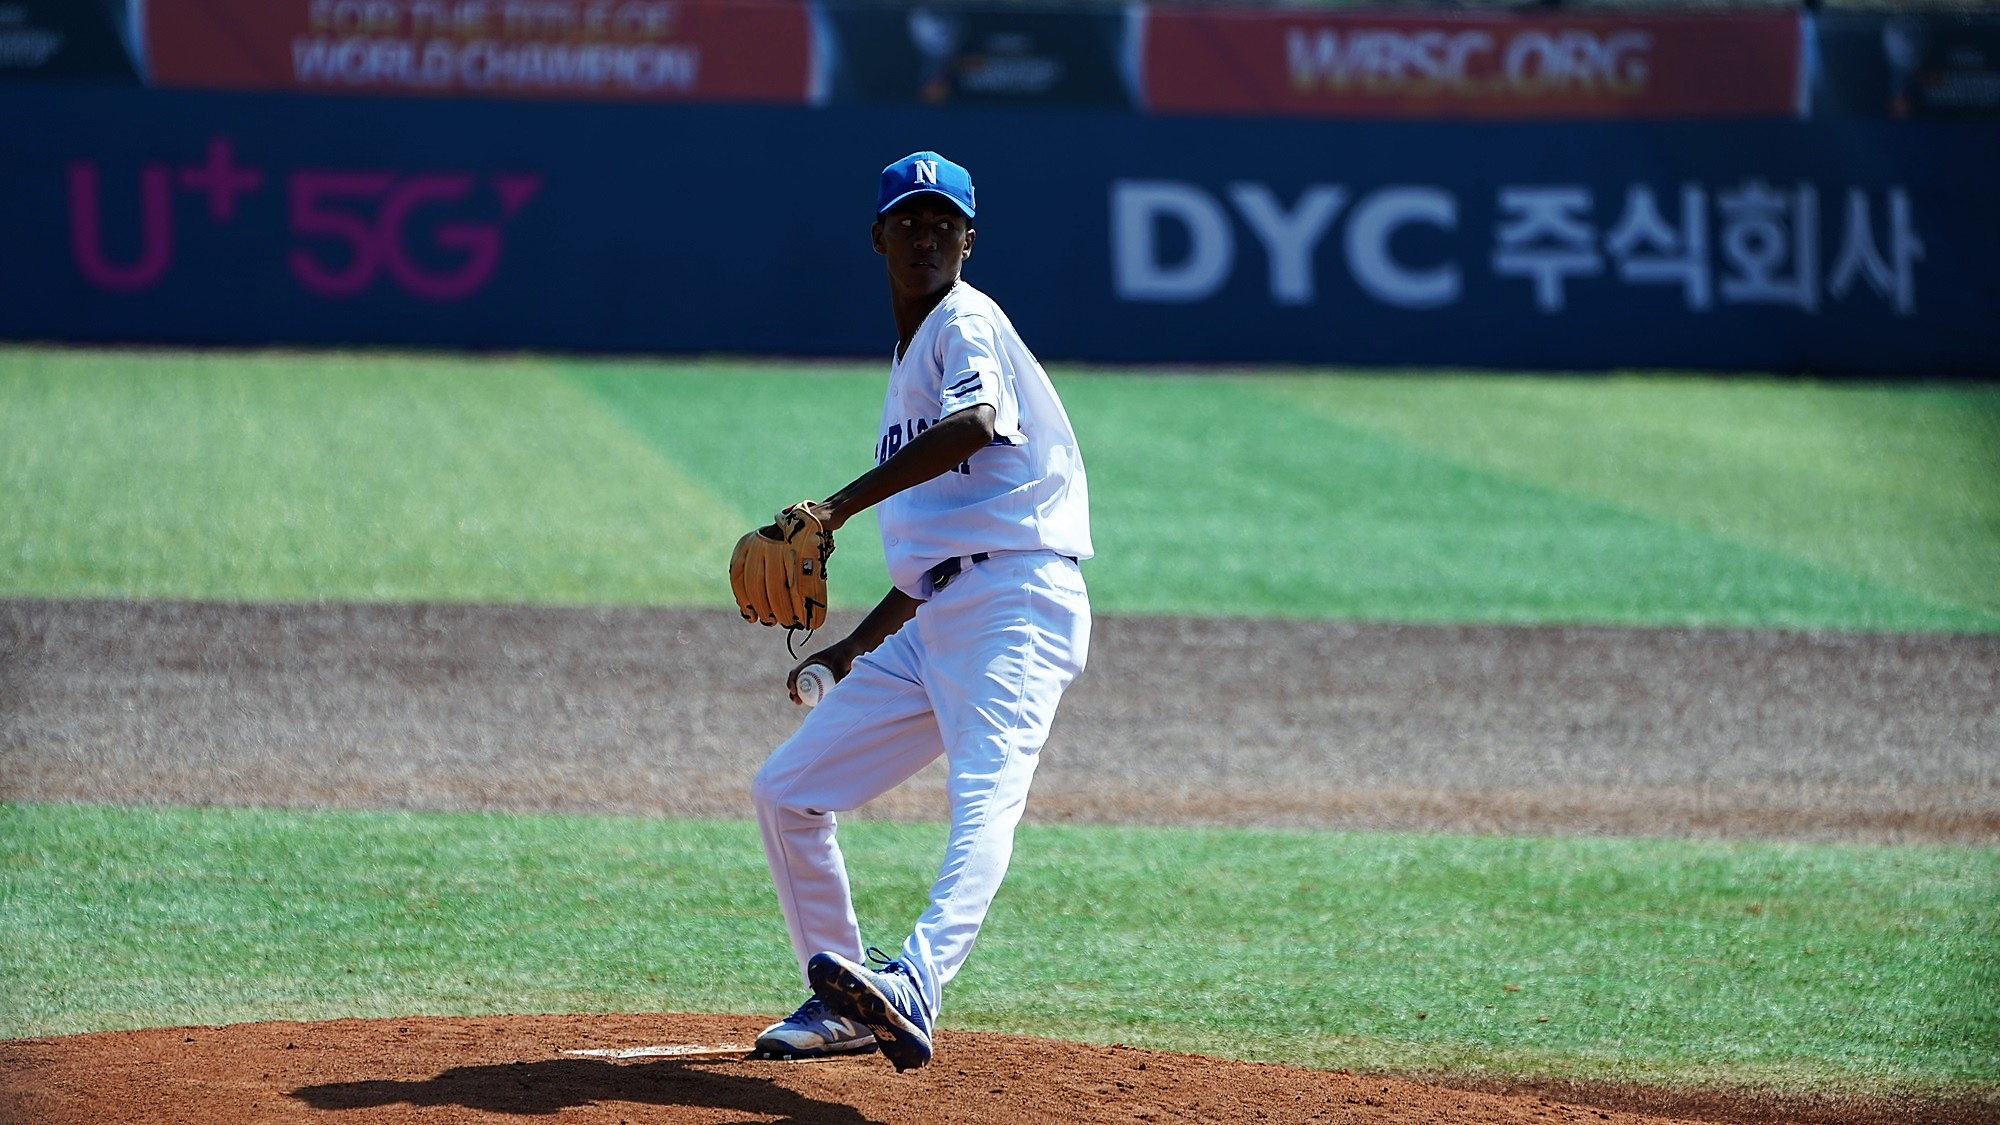 Williams Pravia earned the win for Nicaragua